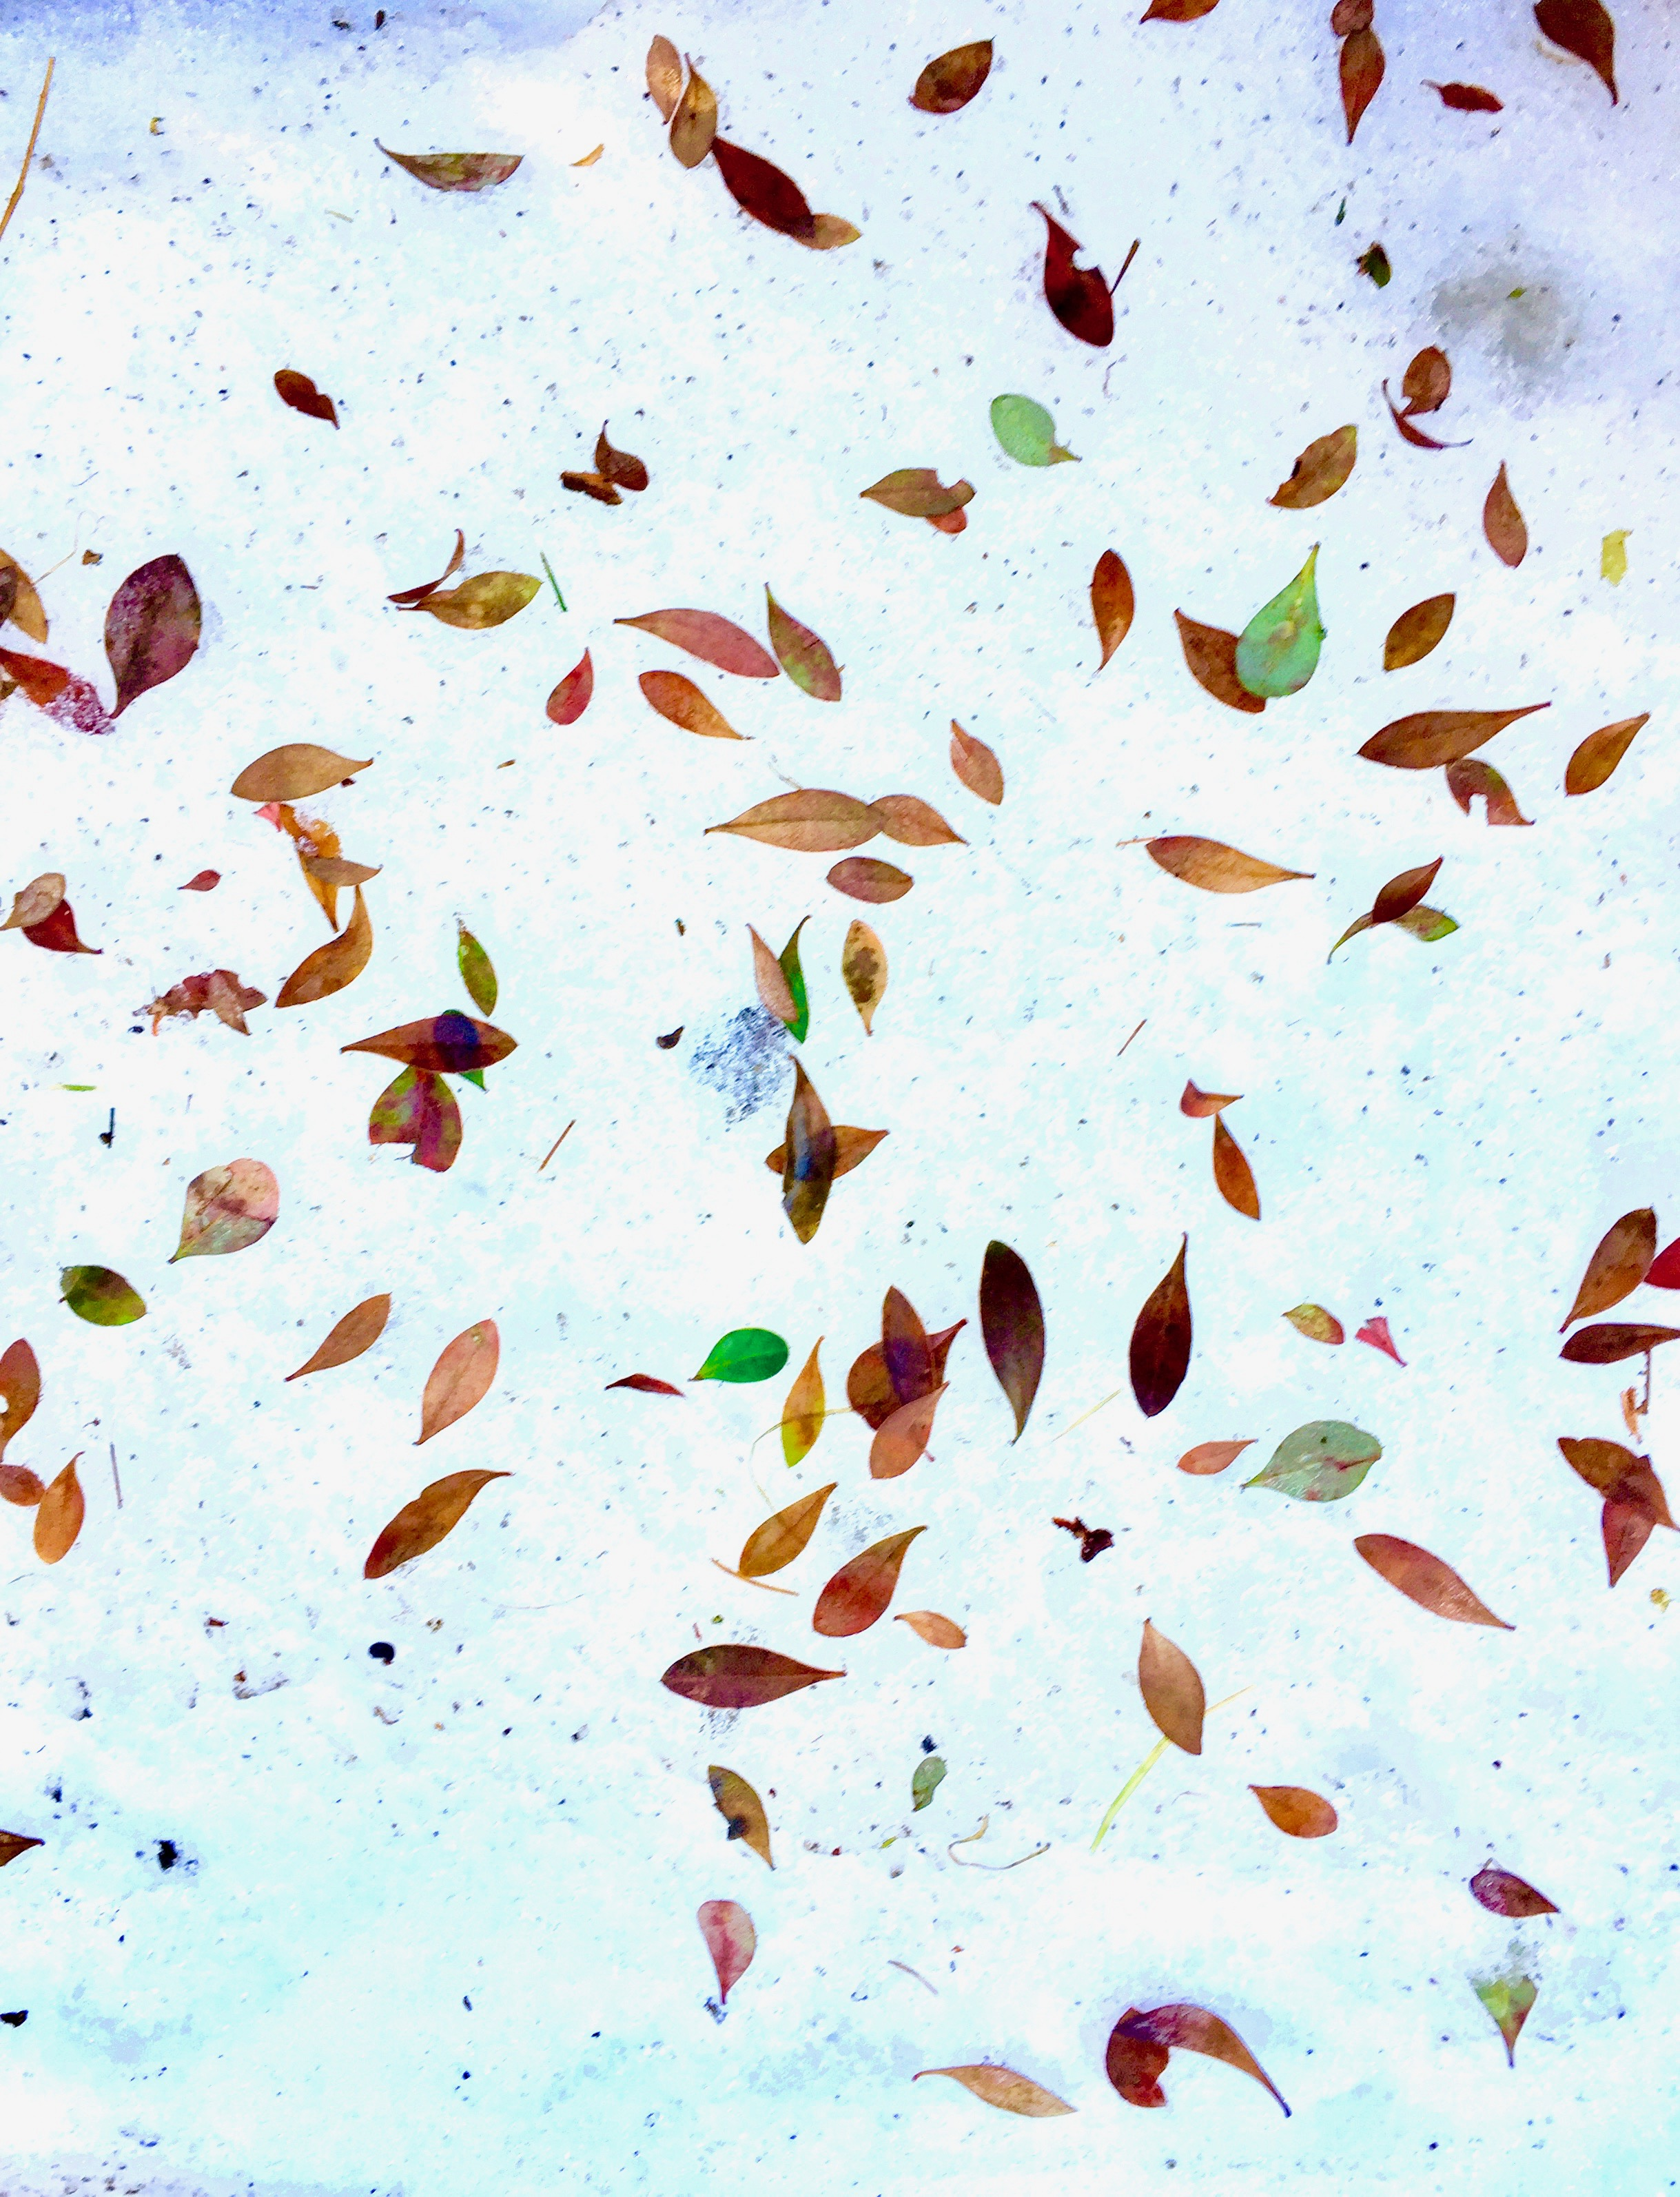 leaves_snow_color.jpg